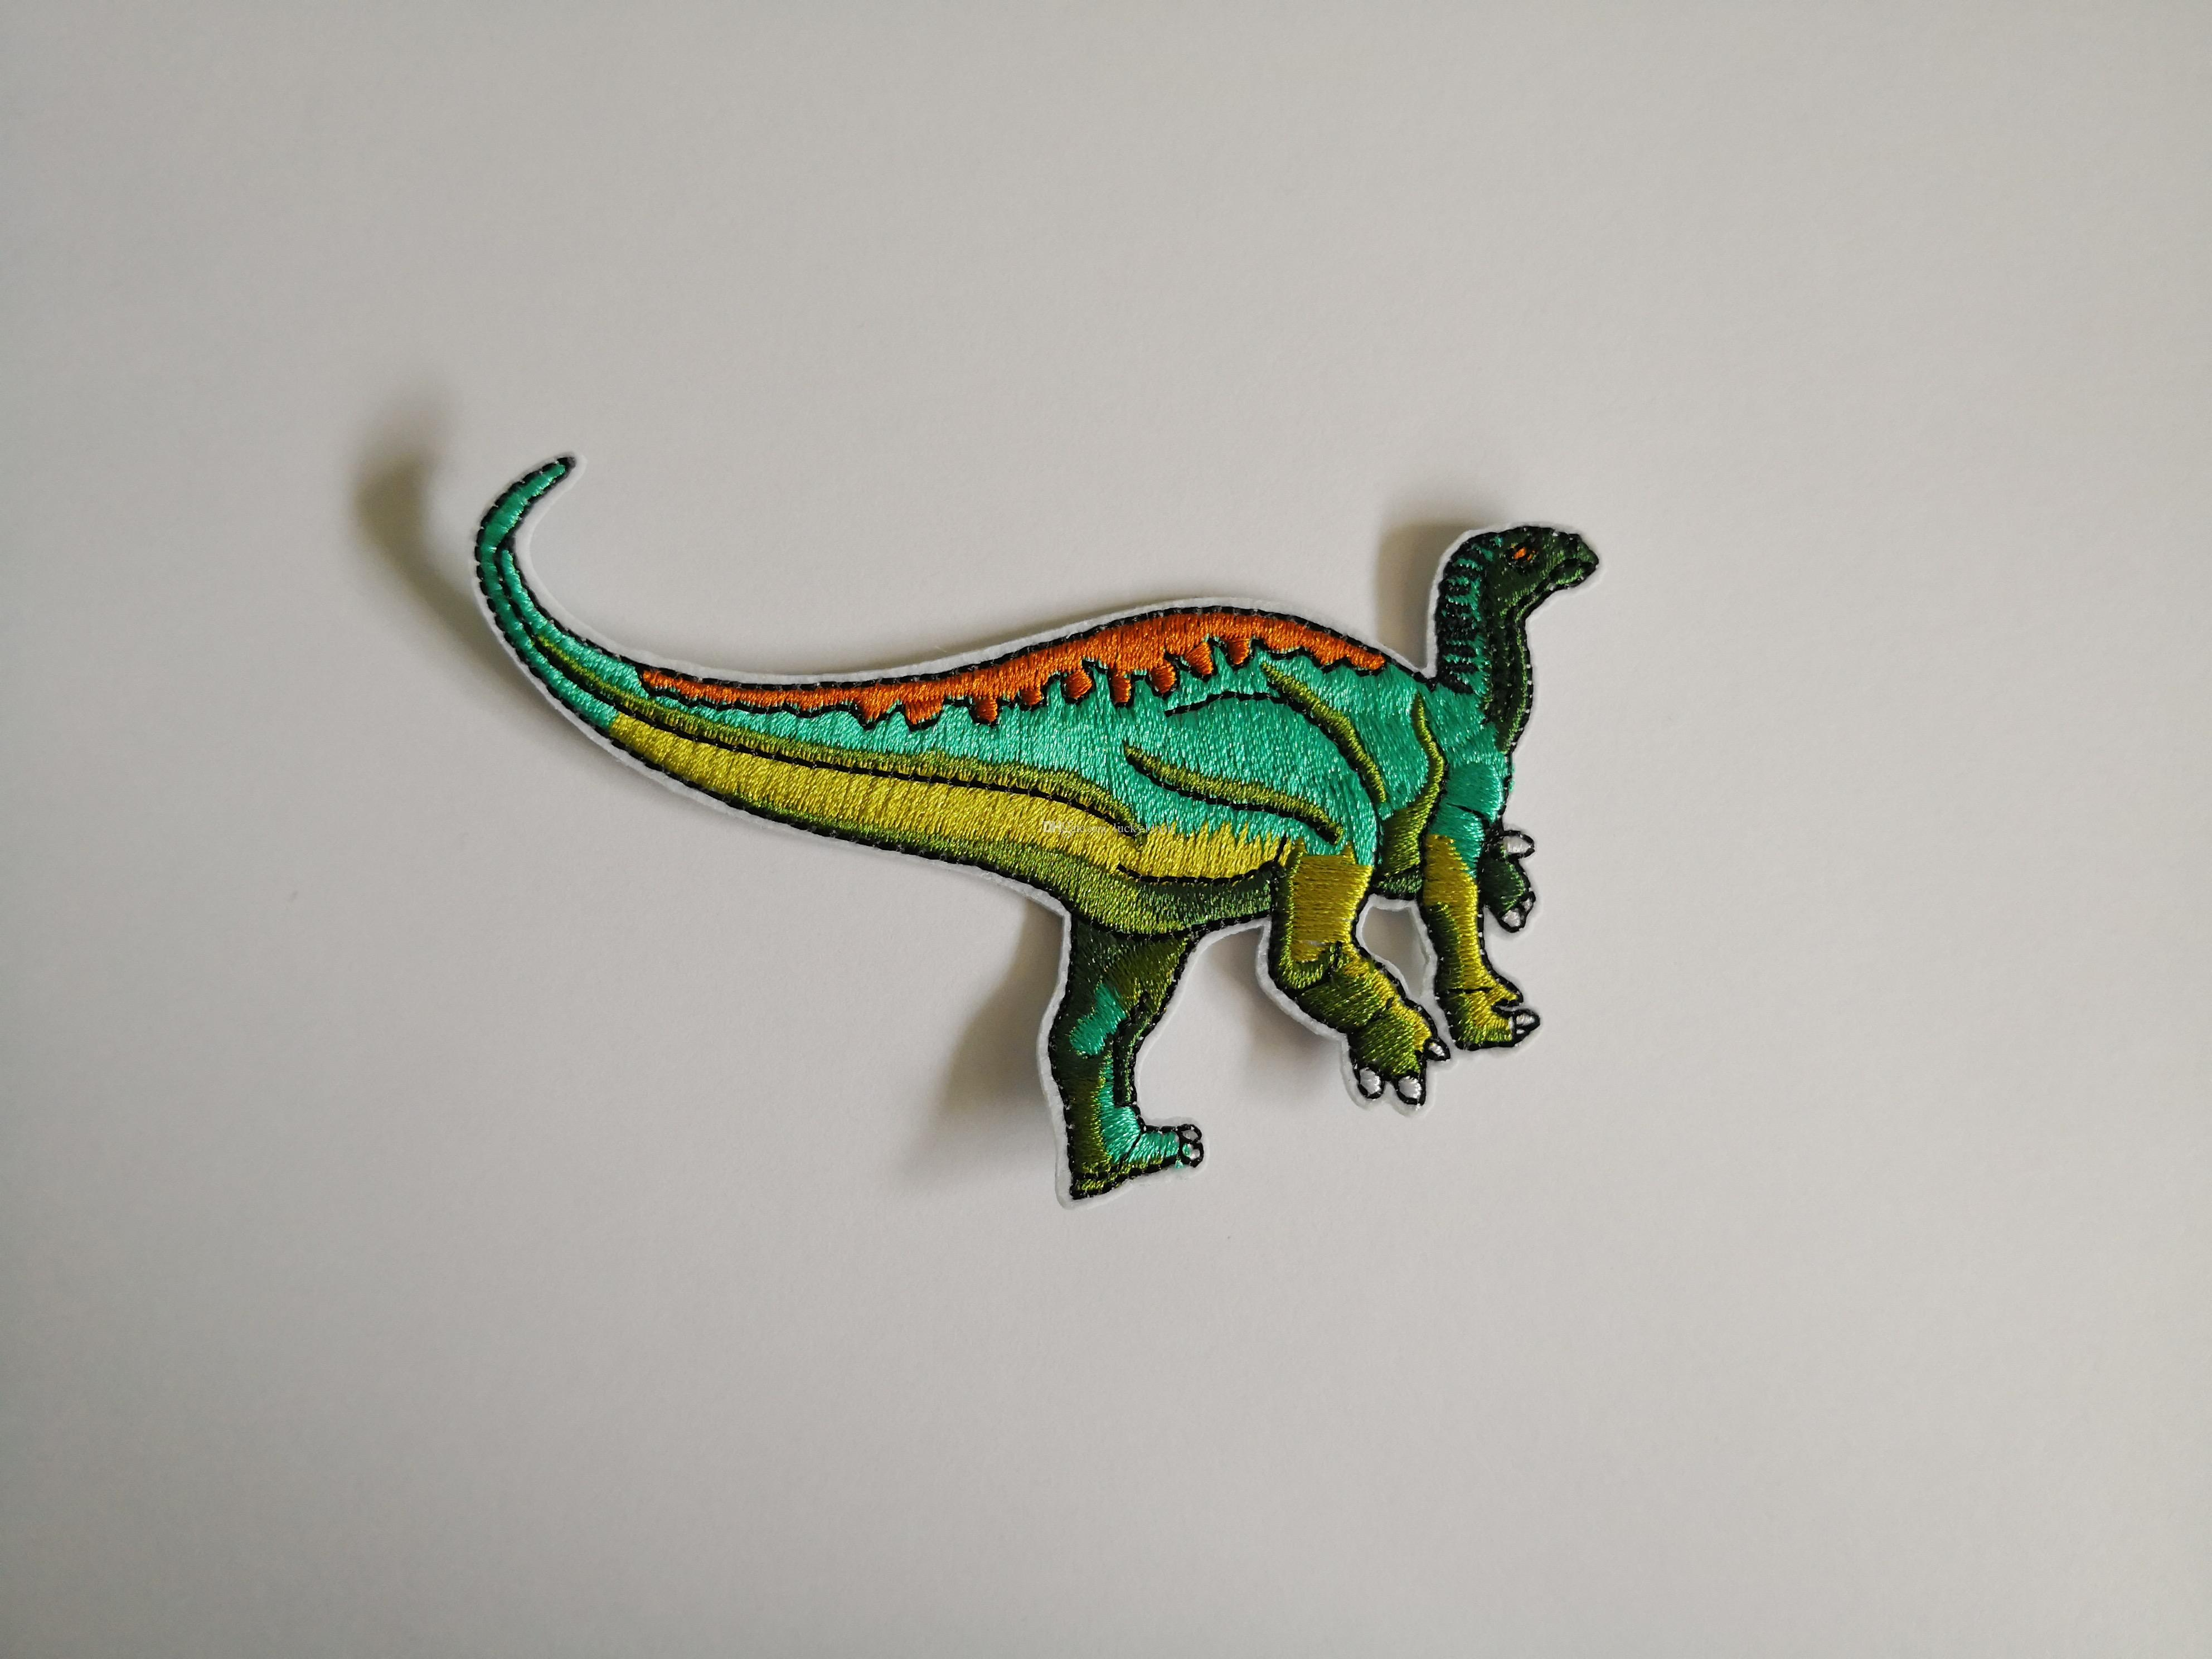 Cool Green Dinosaur Patch Iron on Embroidered Sewing Applique safety management describe Gift shirt bag trousers coat Vest Clothes